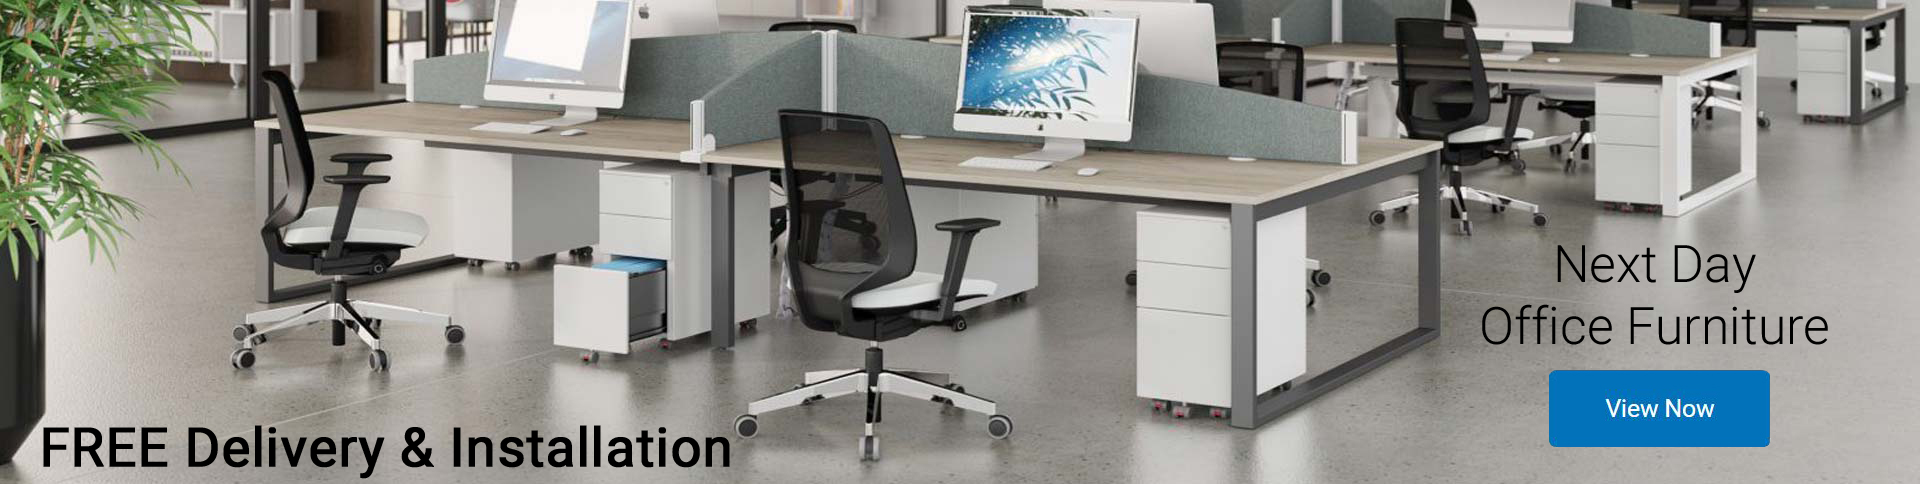 0e2282b6a36 Andrews Office Furniture  Office Furniture